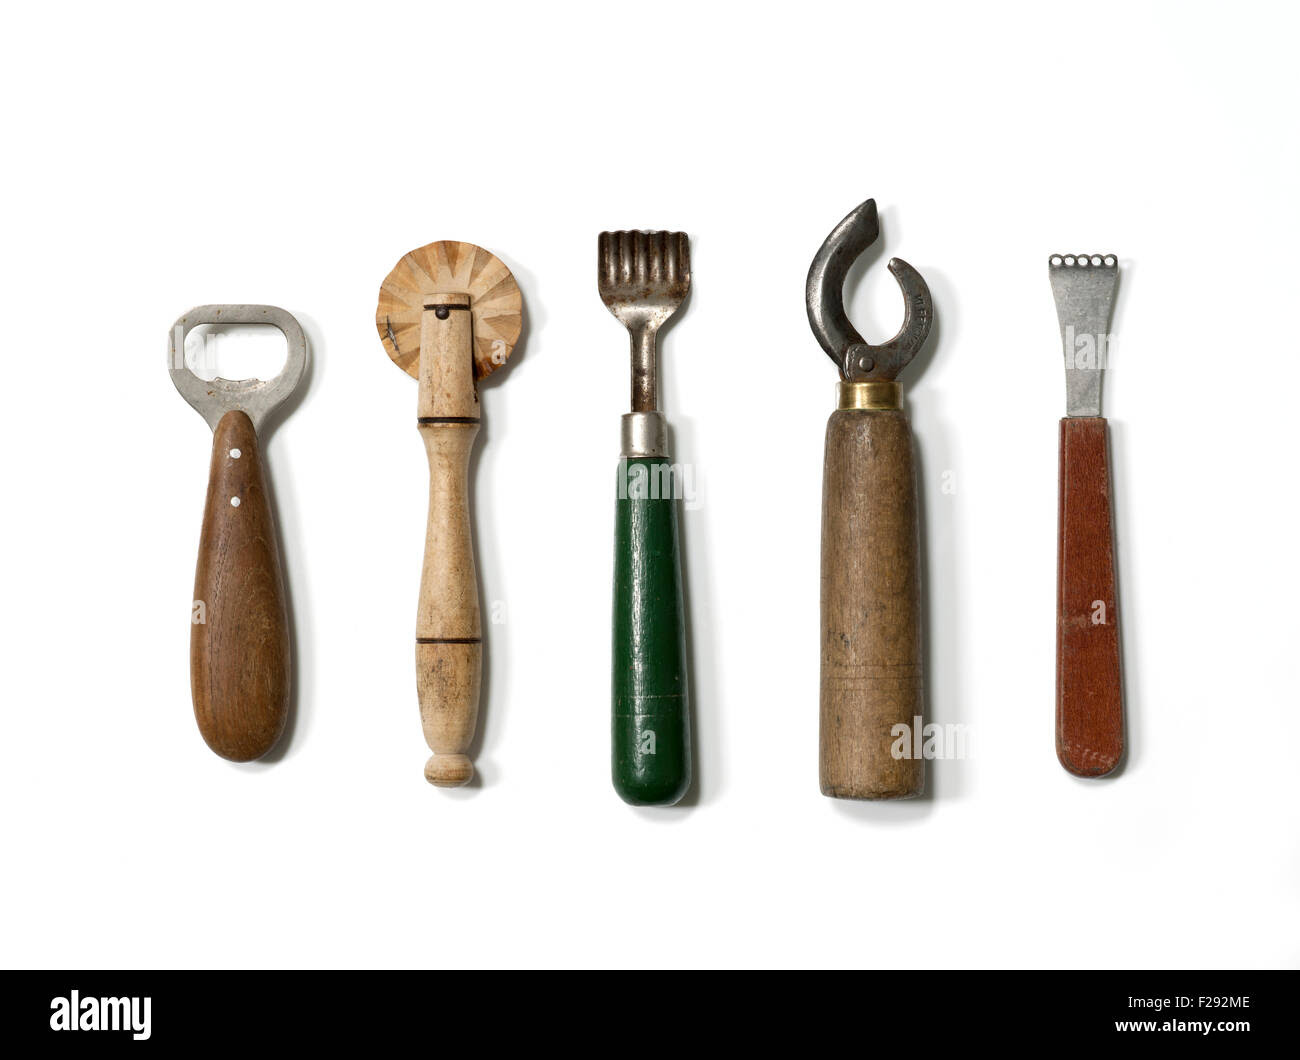 Vintage KItchen Tools Or Gadgets Stock Photo 87480862 Alamy